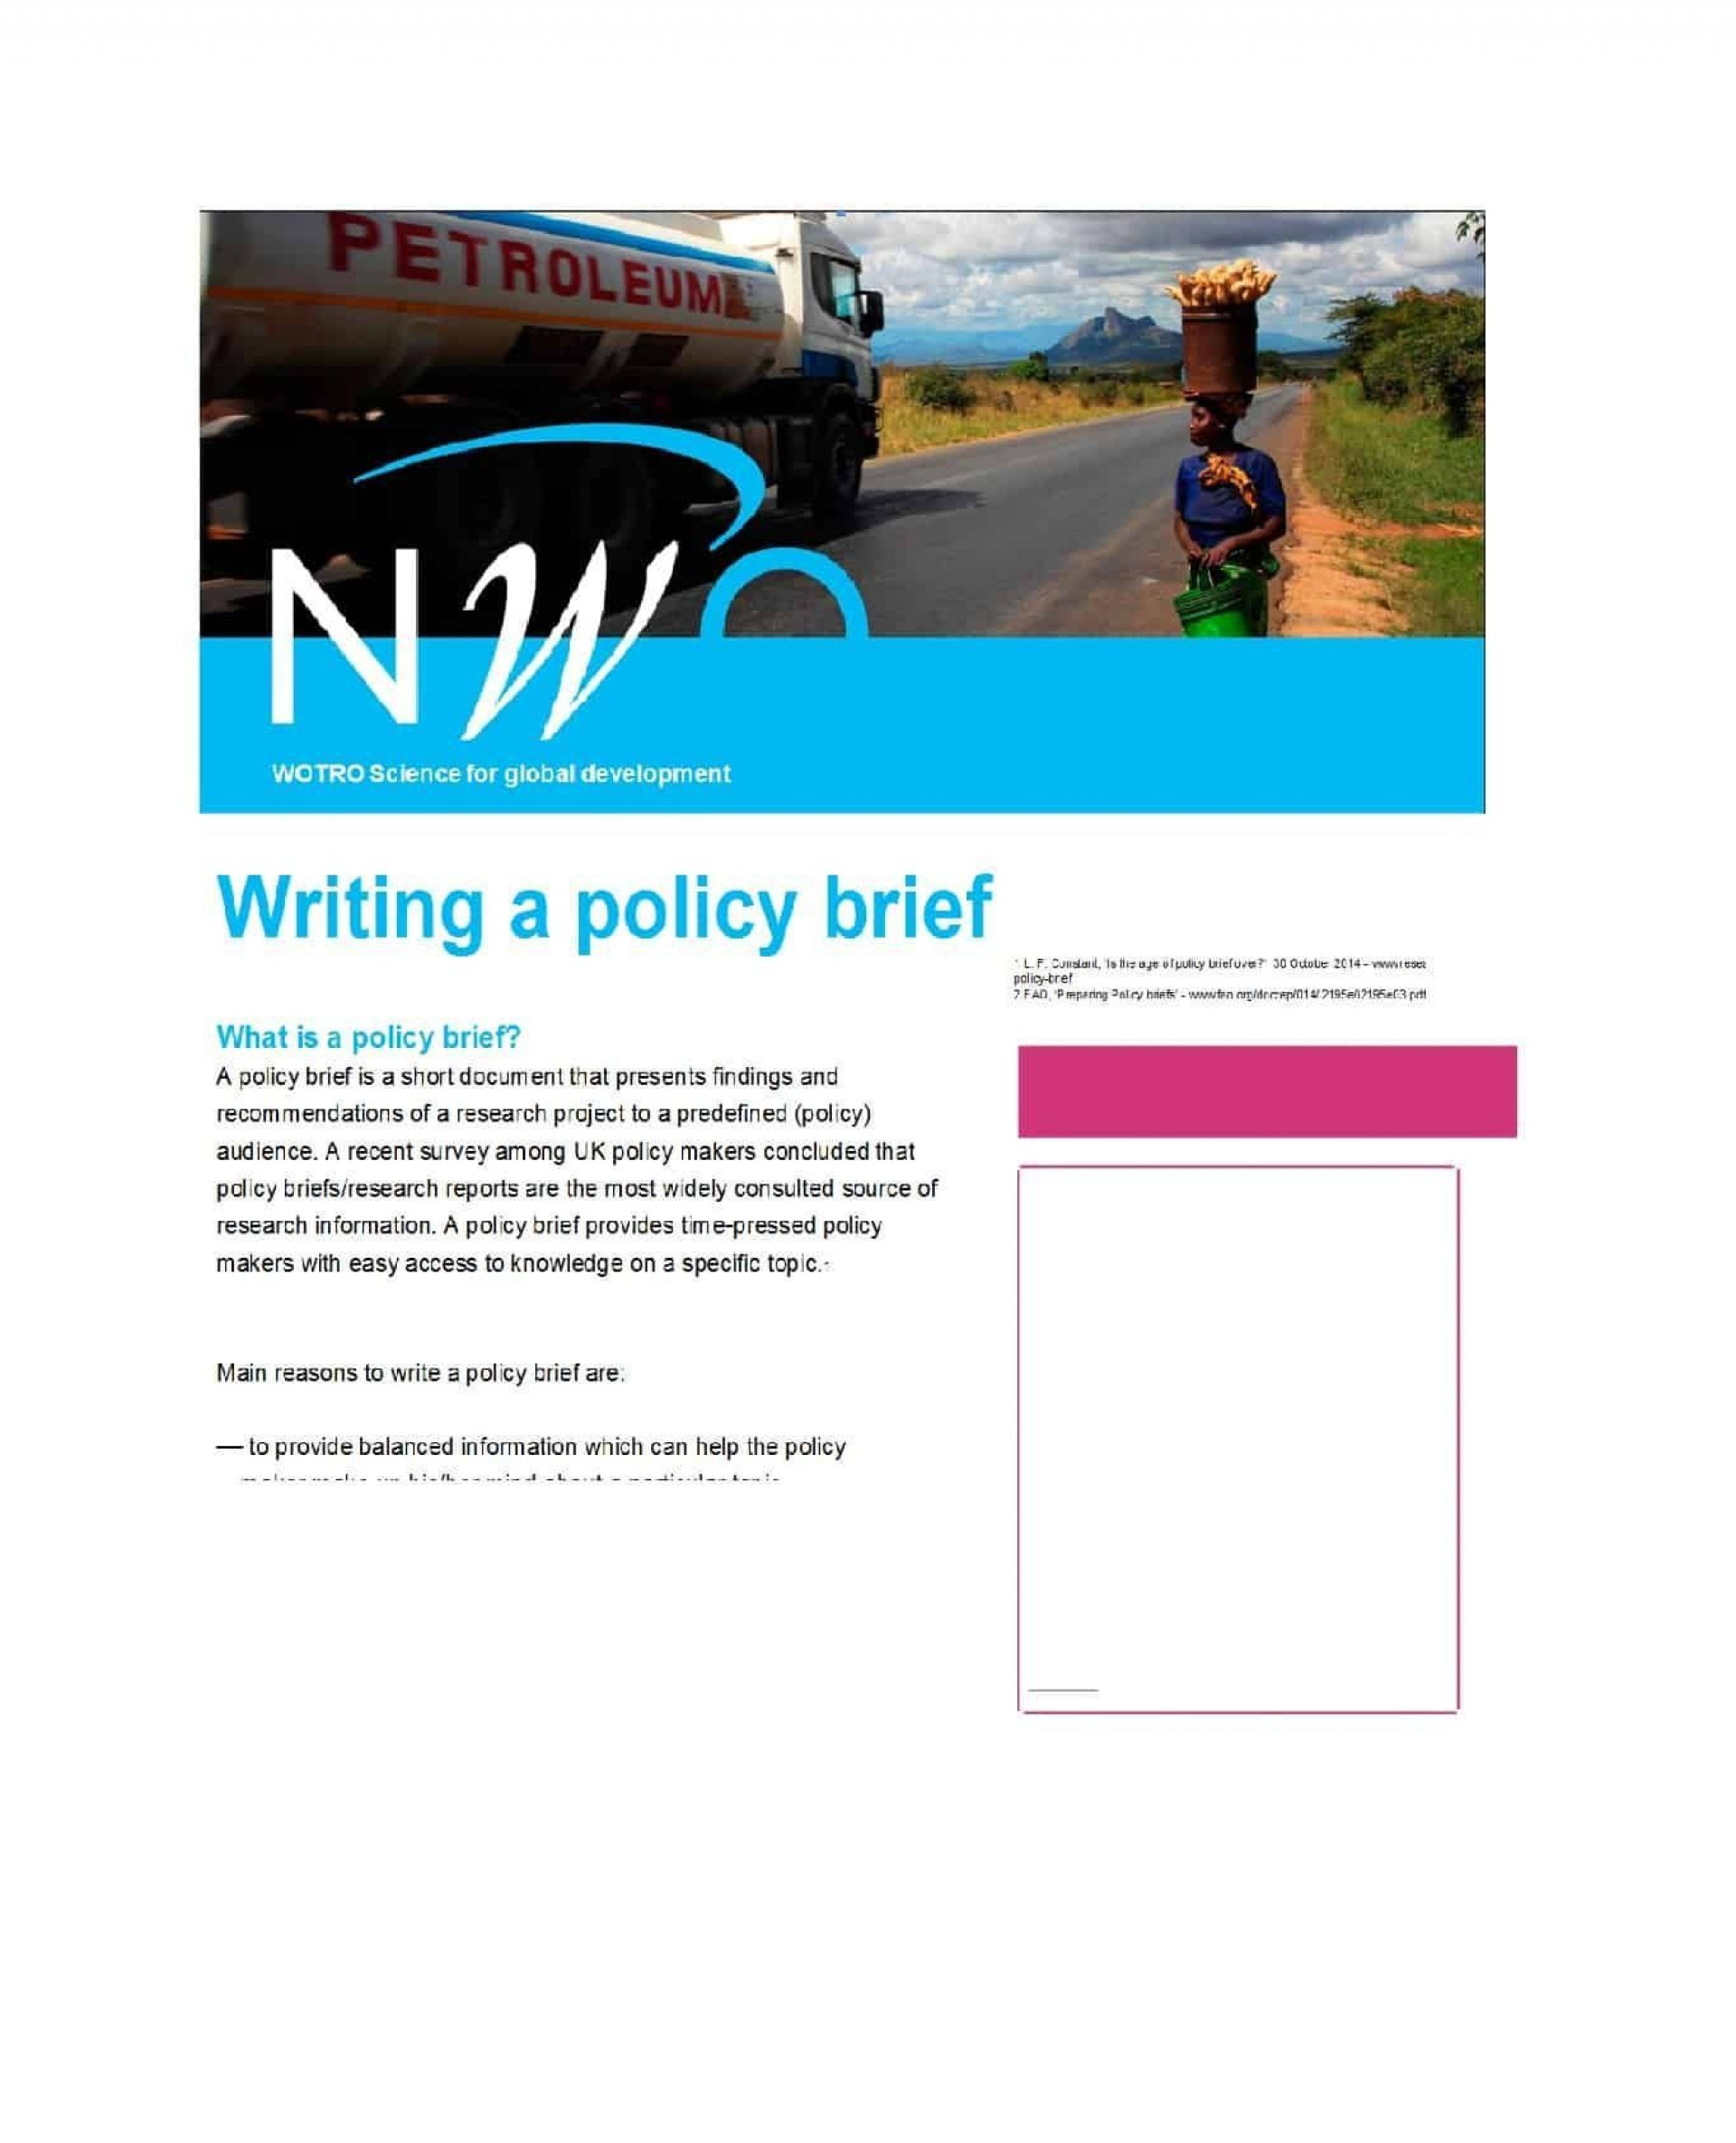 000 Incredible Policy Brief Template Microsoft Word Example  And Procedure1920